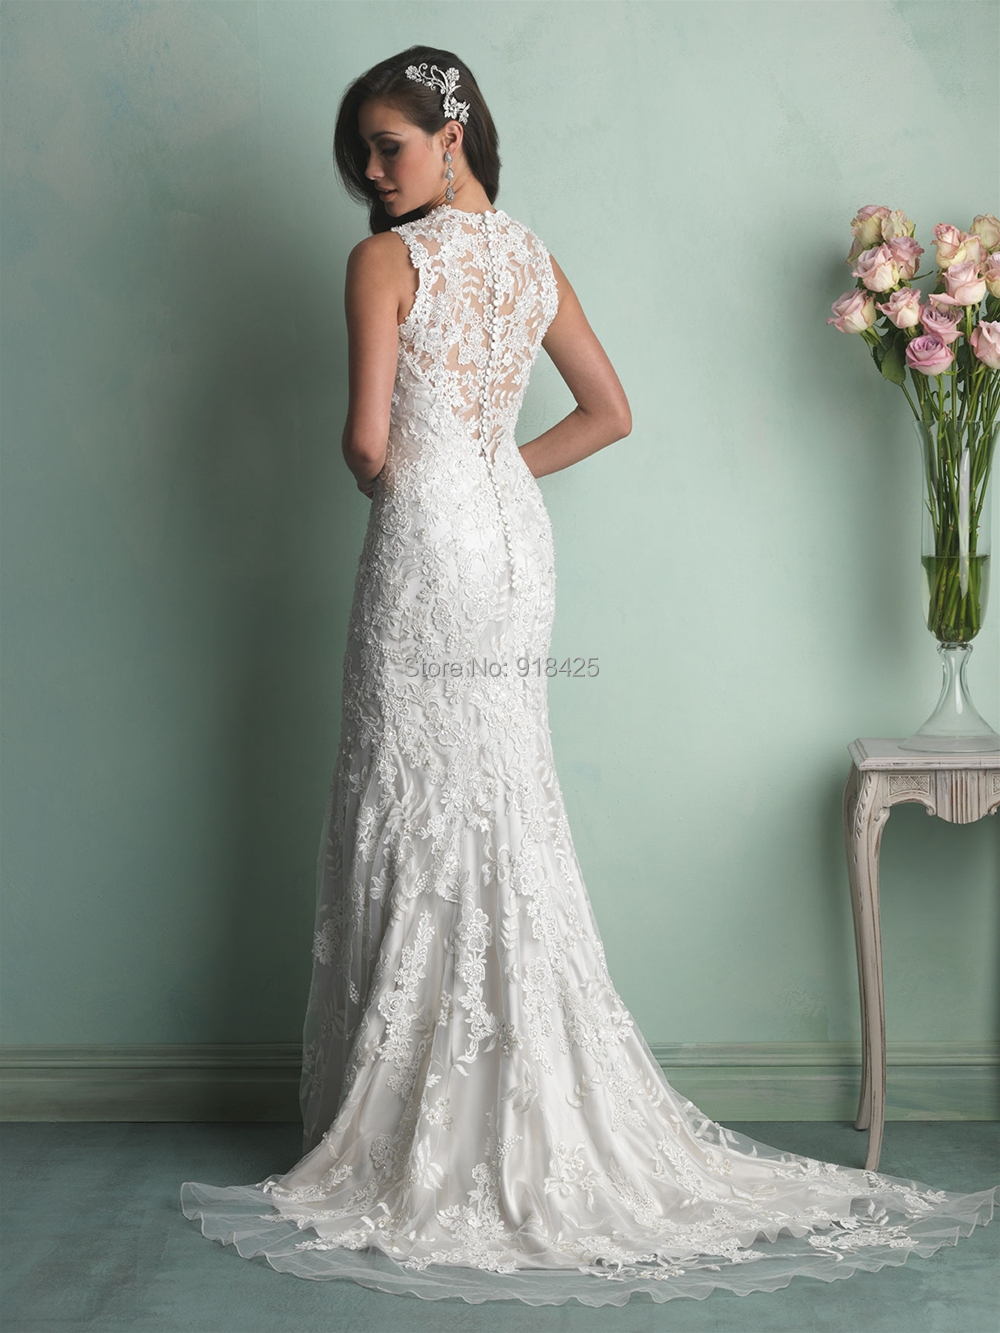 Illusion Neckline Lace Wedding Dresses Mermaid Bride Gowns Sexy See ...